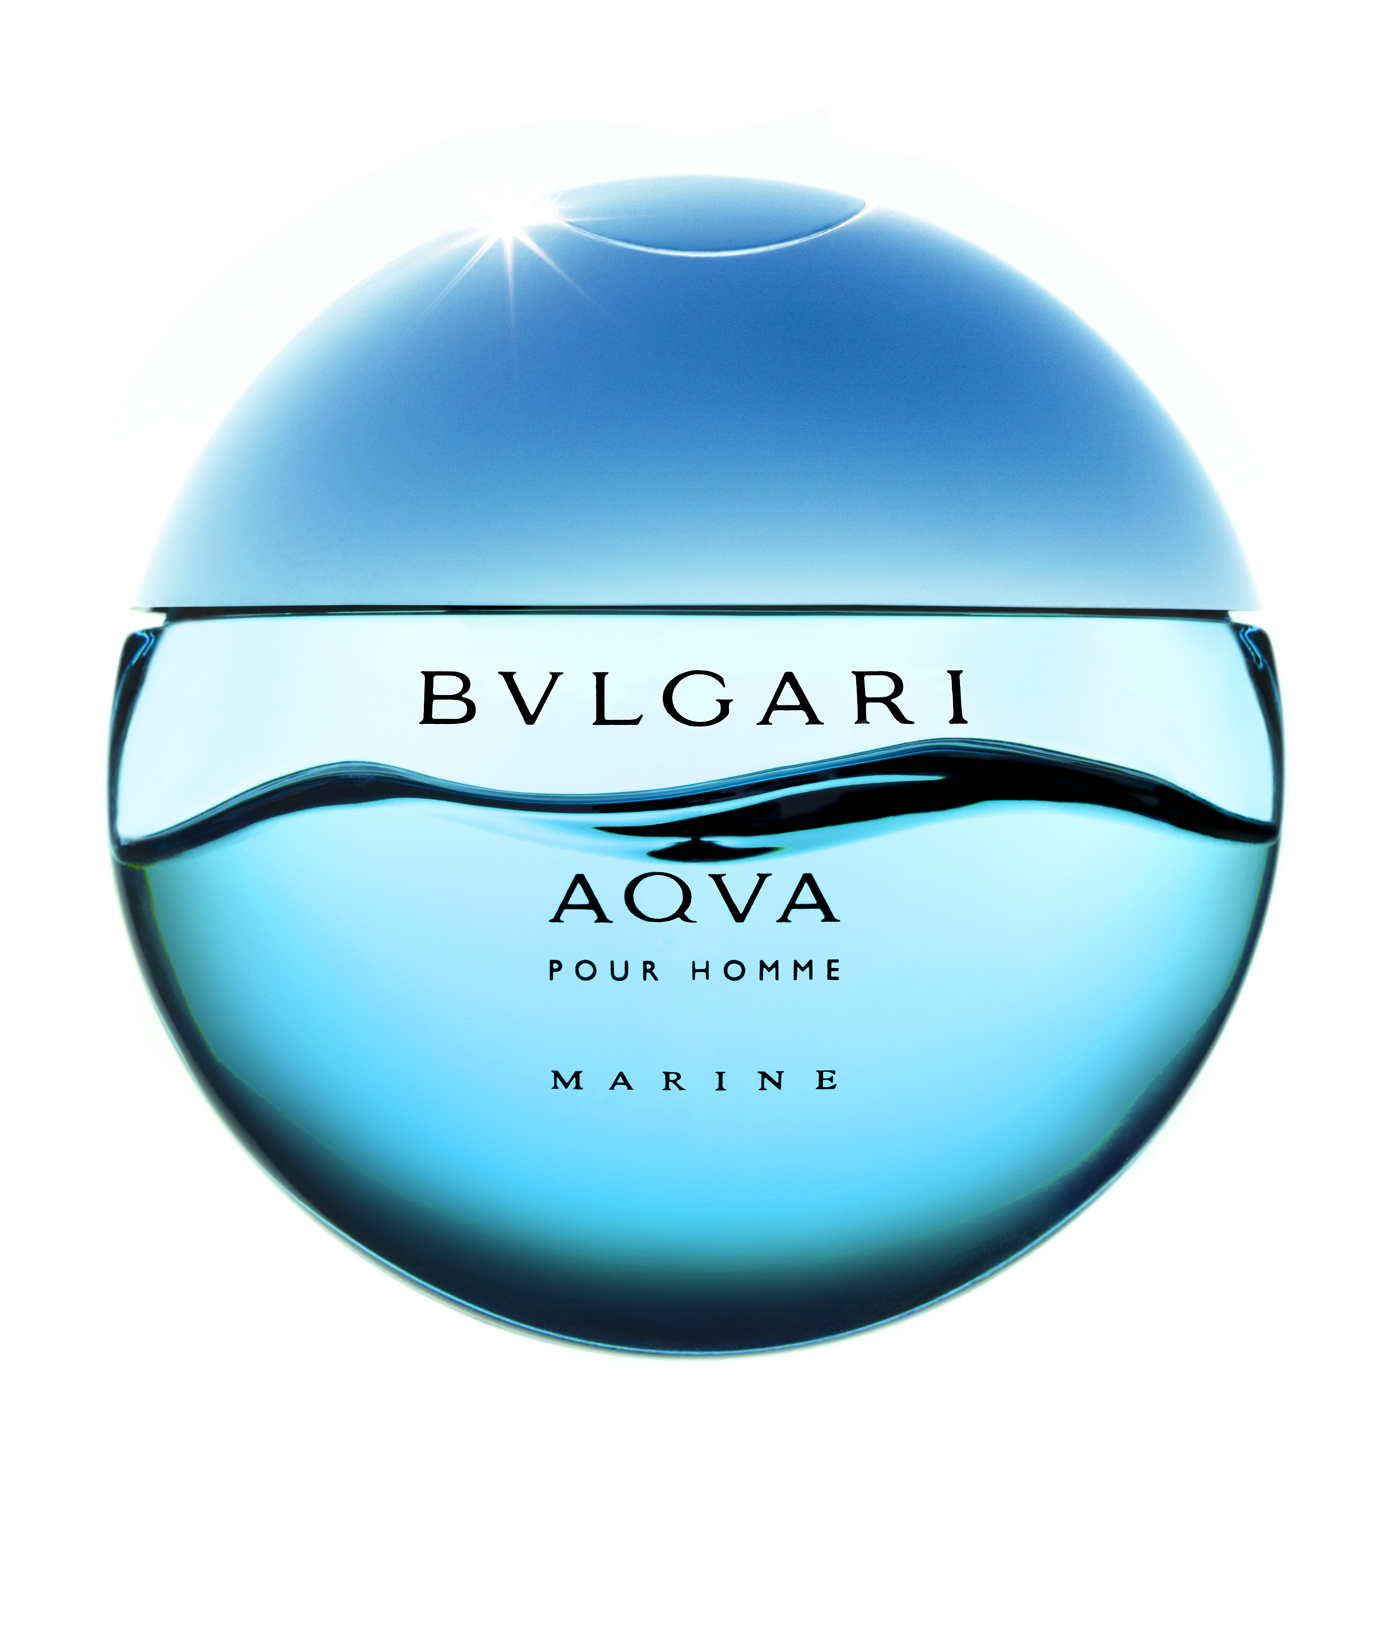 Bulgari bottle copy